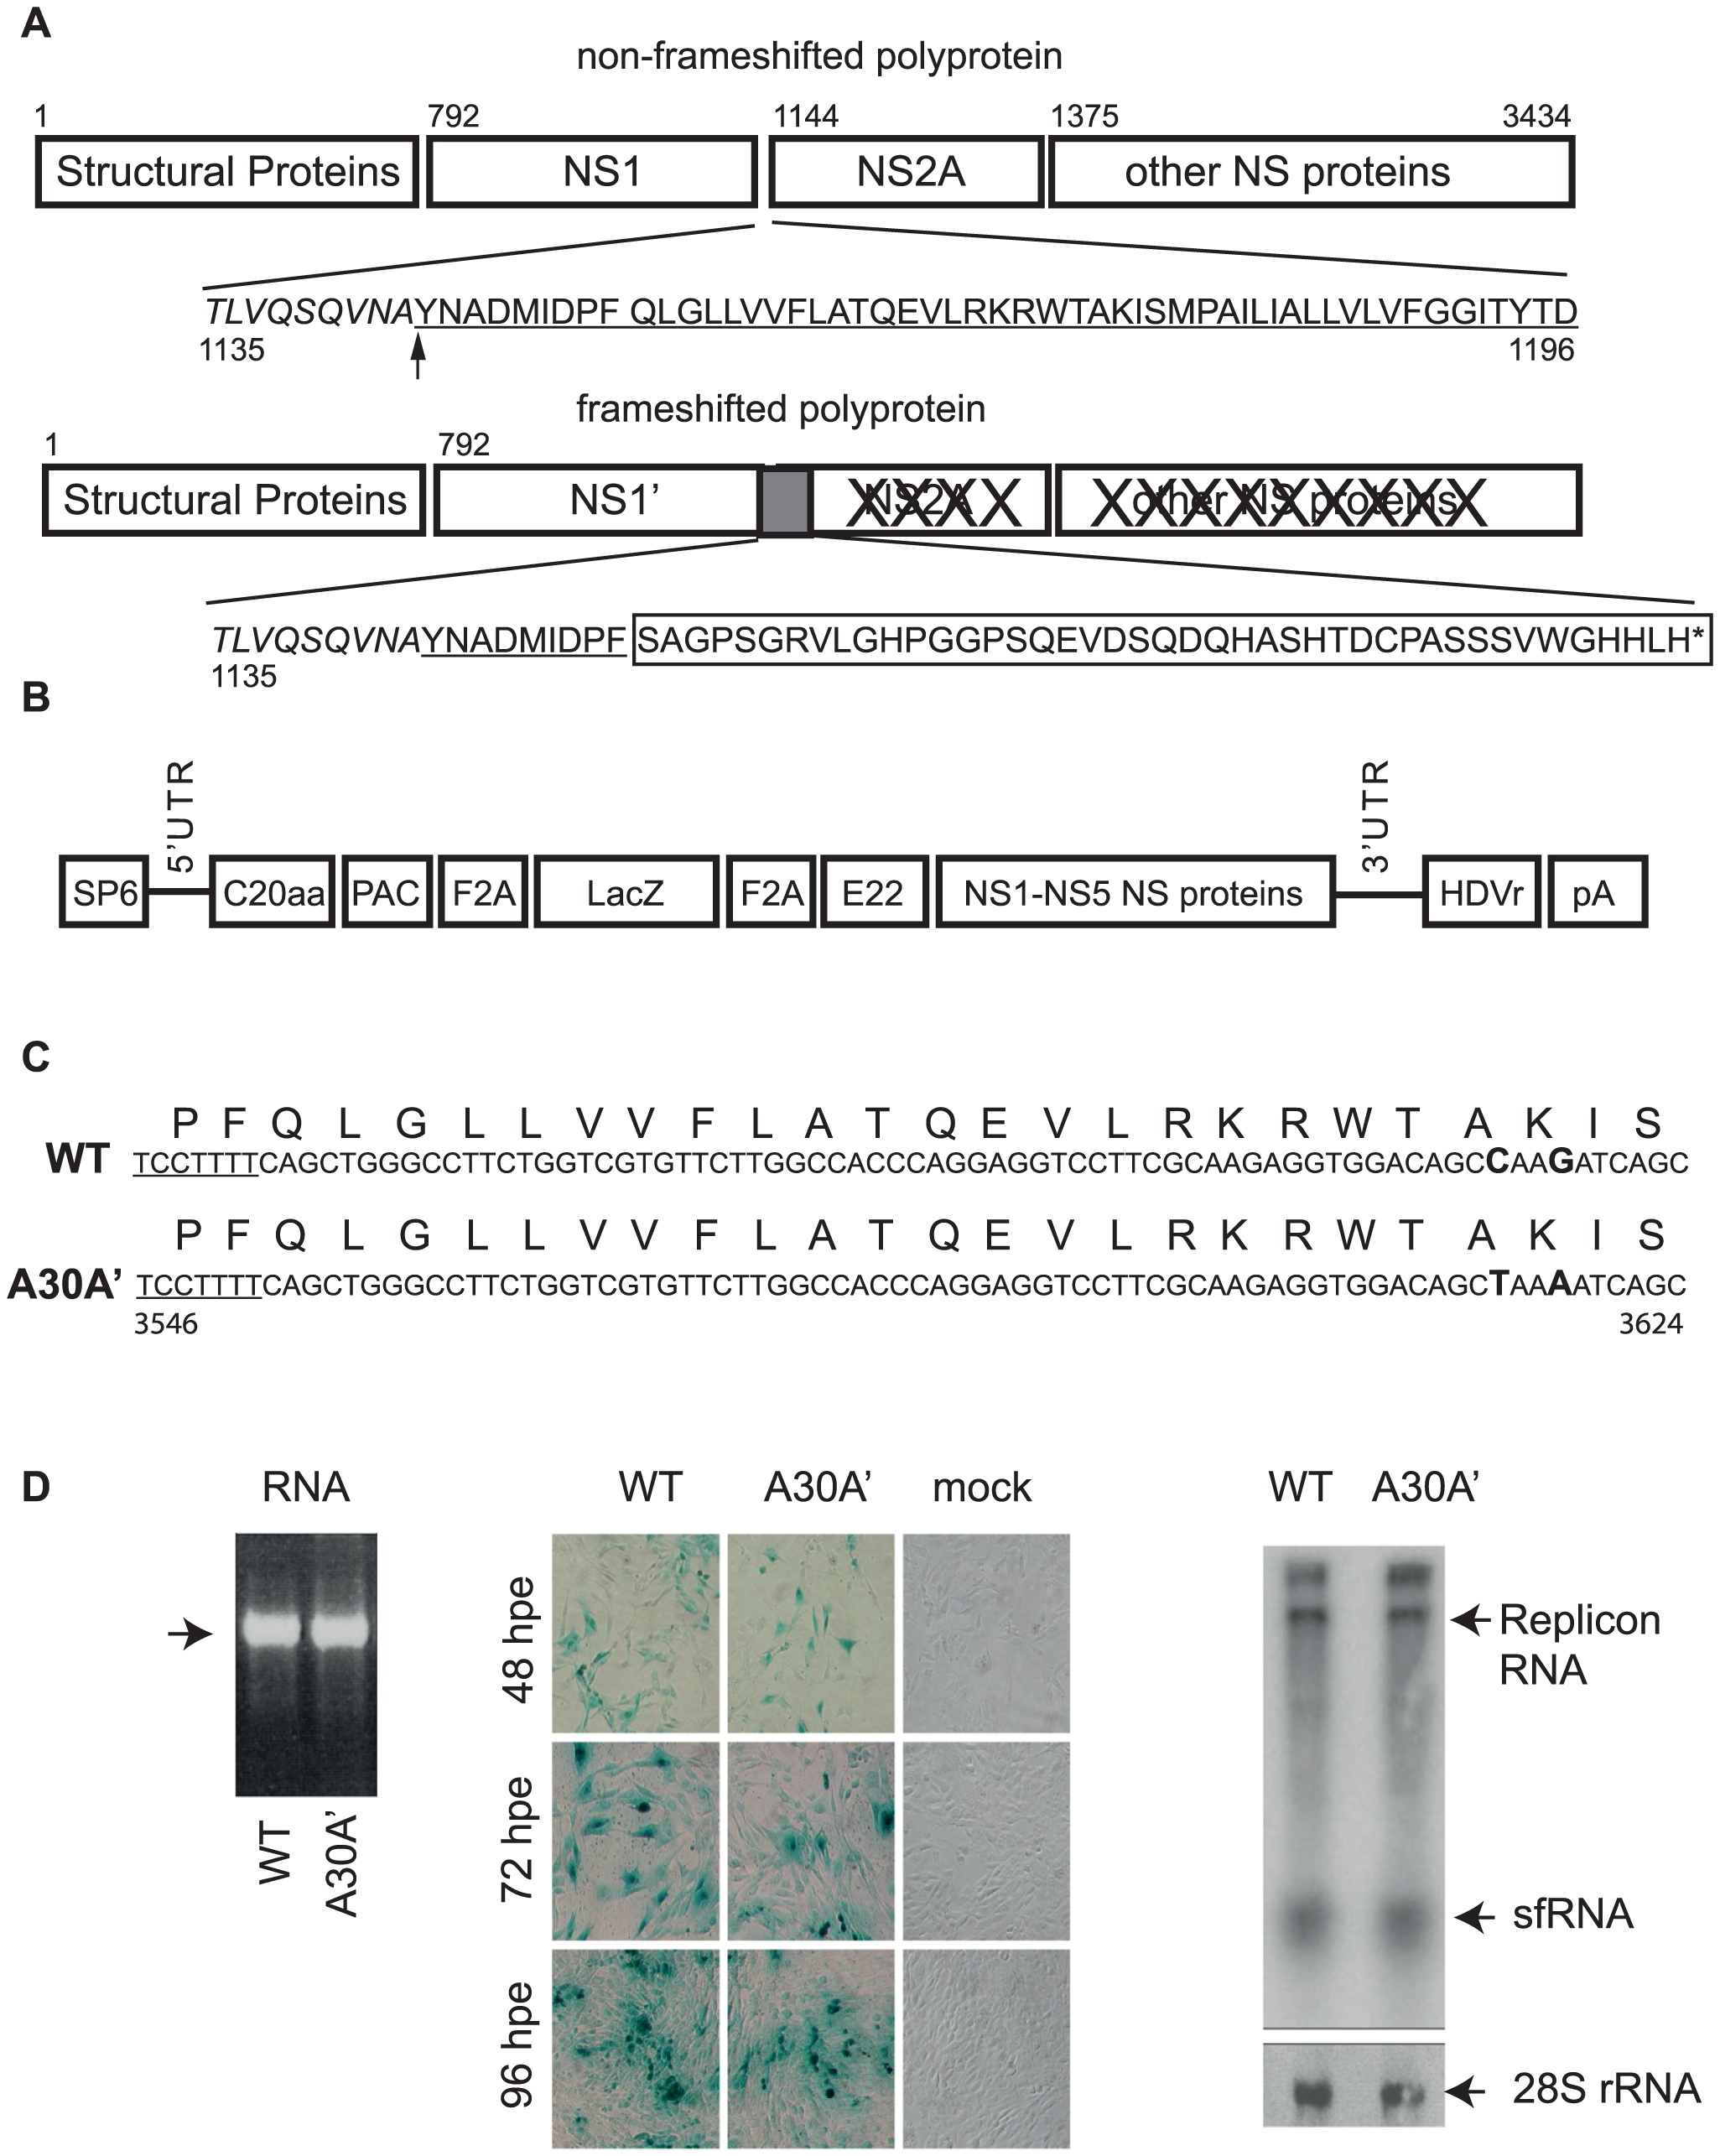 WT and A30A′ replicons show similar rates of replication in BHK cells electroporated with KUNRep-WT or KUNRep-A30A transcribed RNAs.